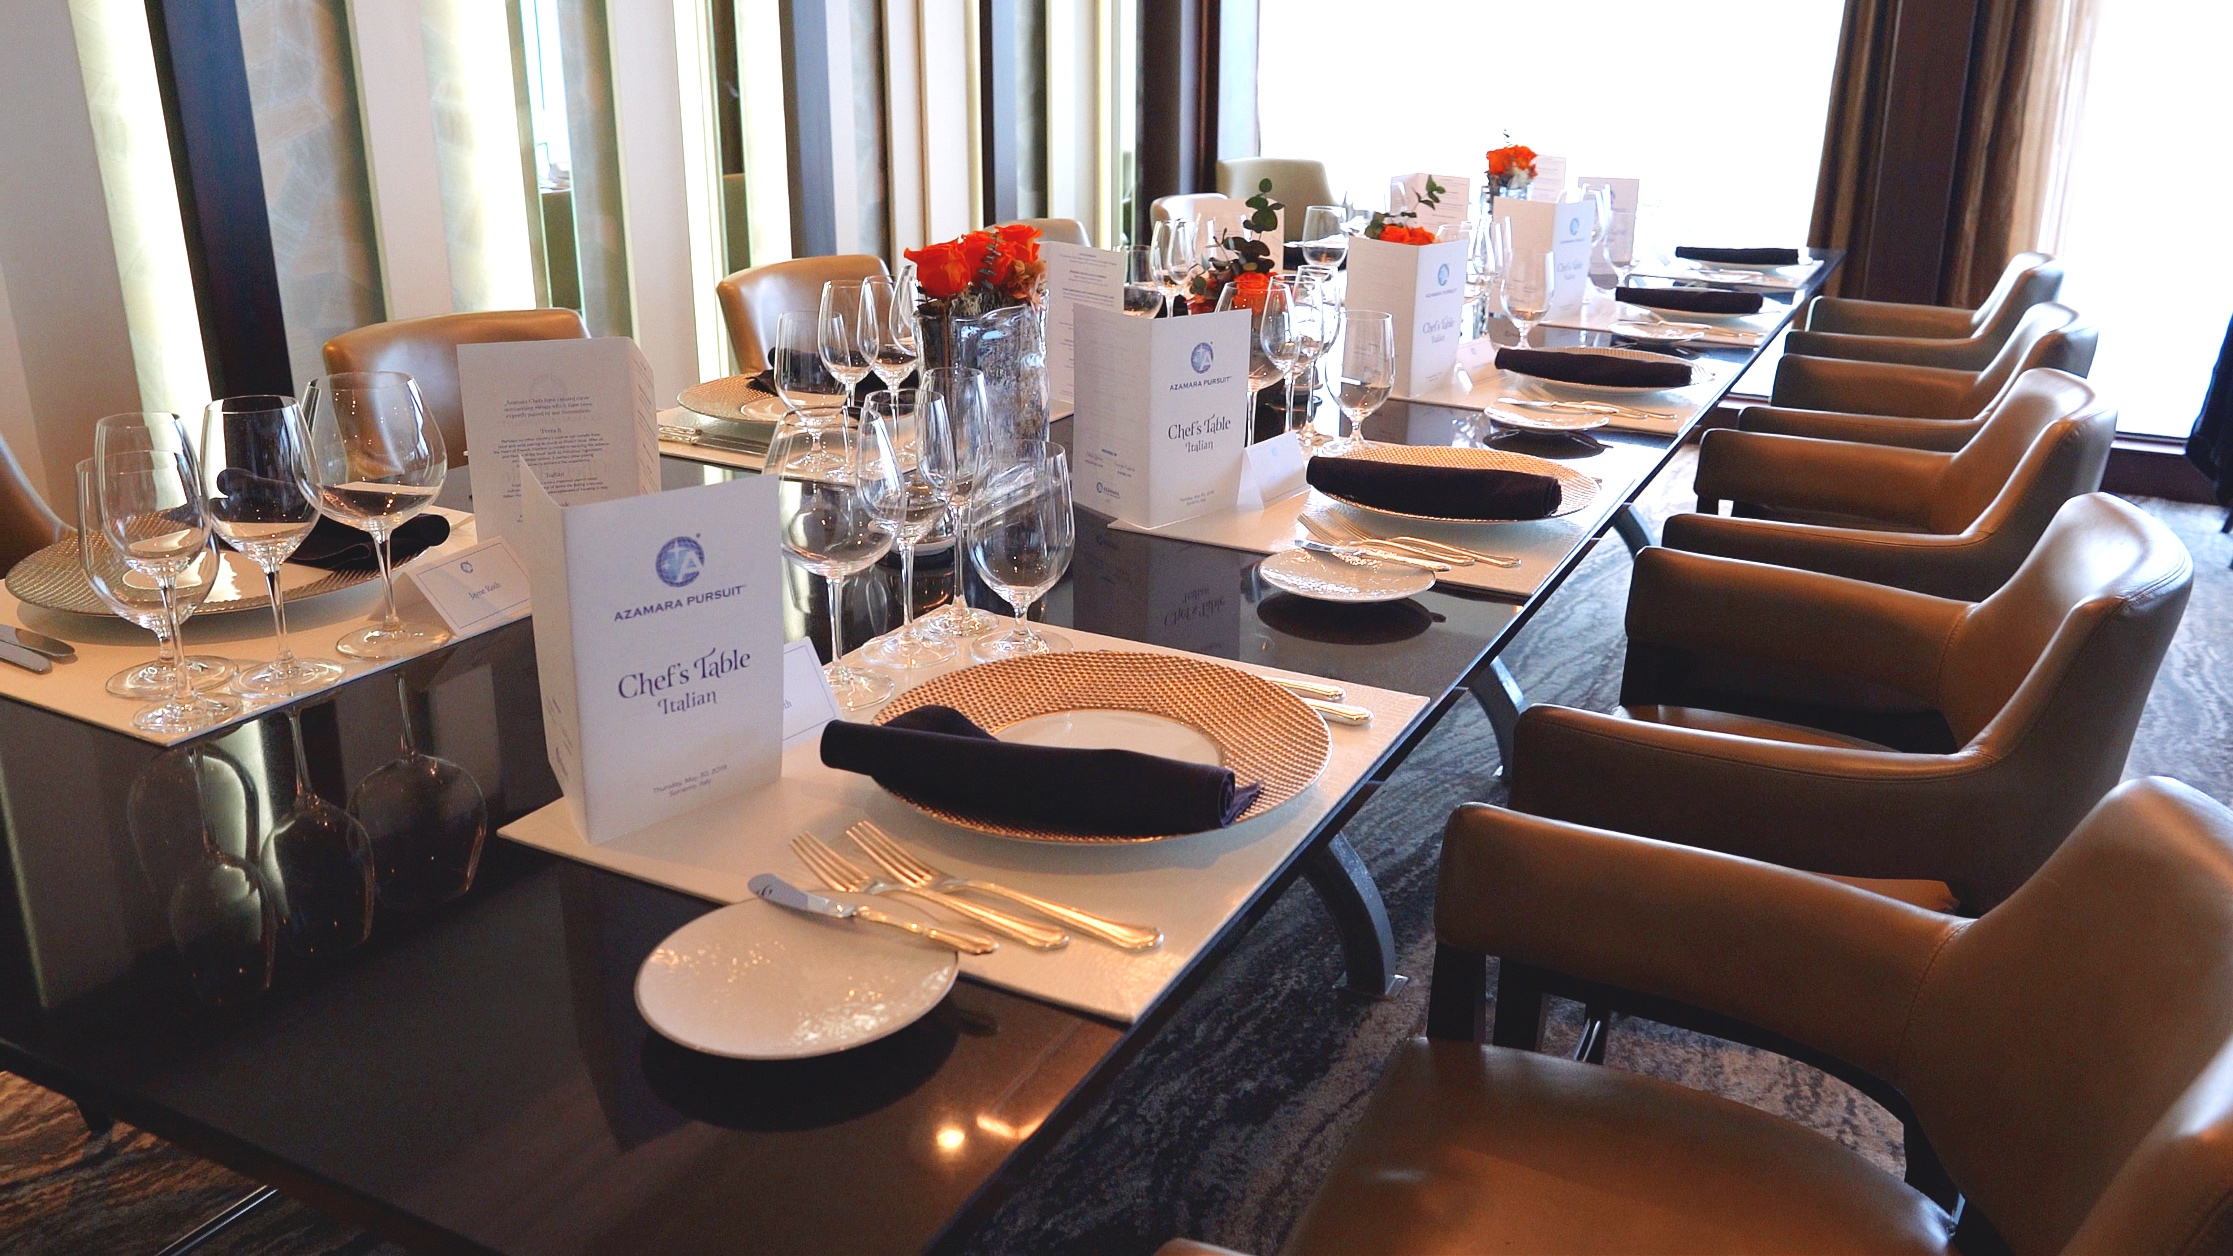 The Chefs table in Prime C restaurant